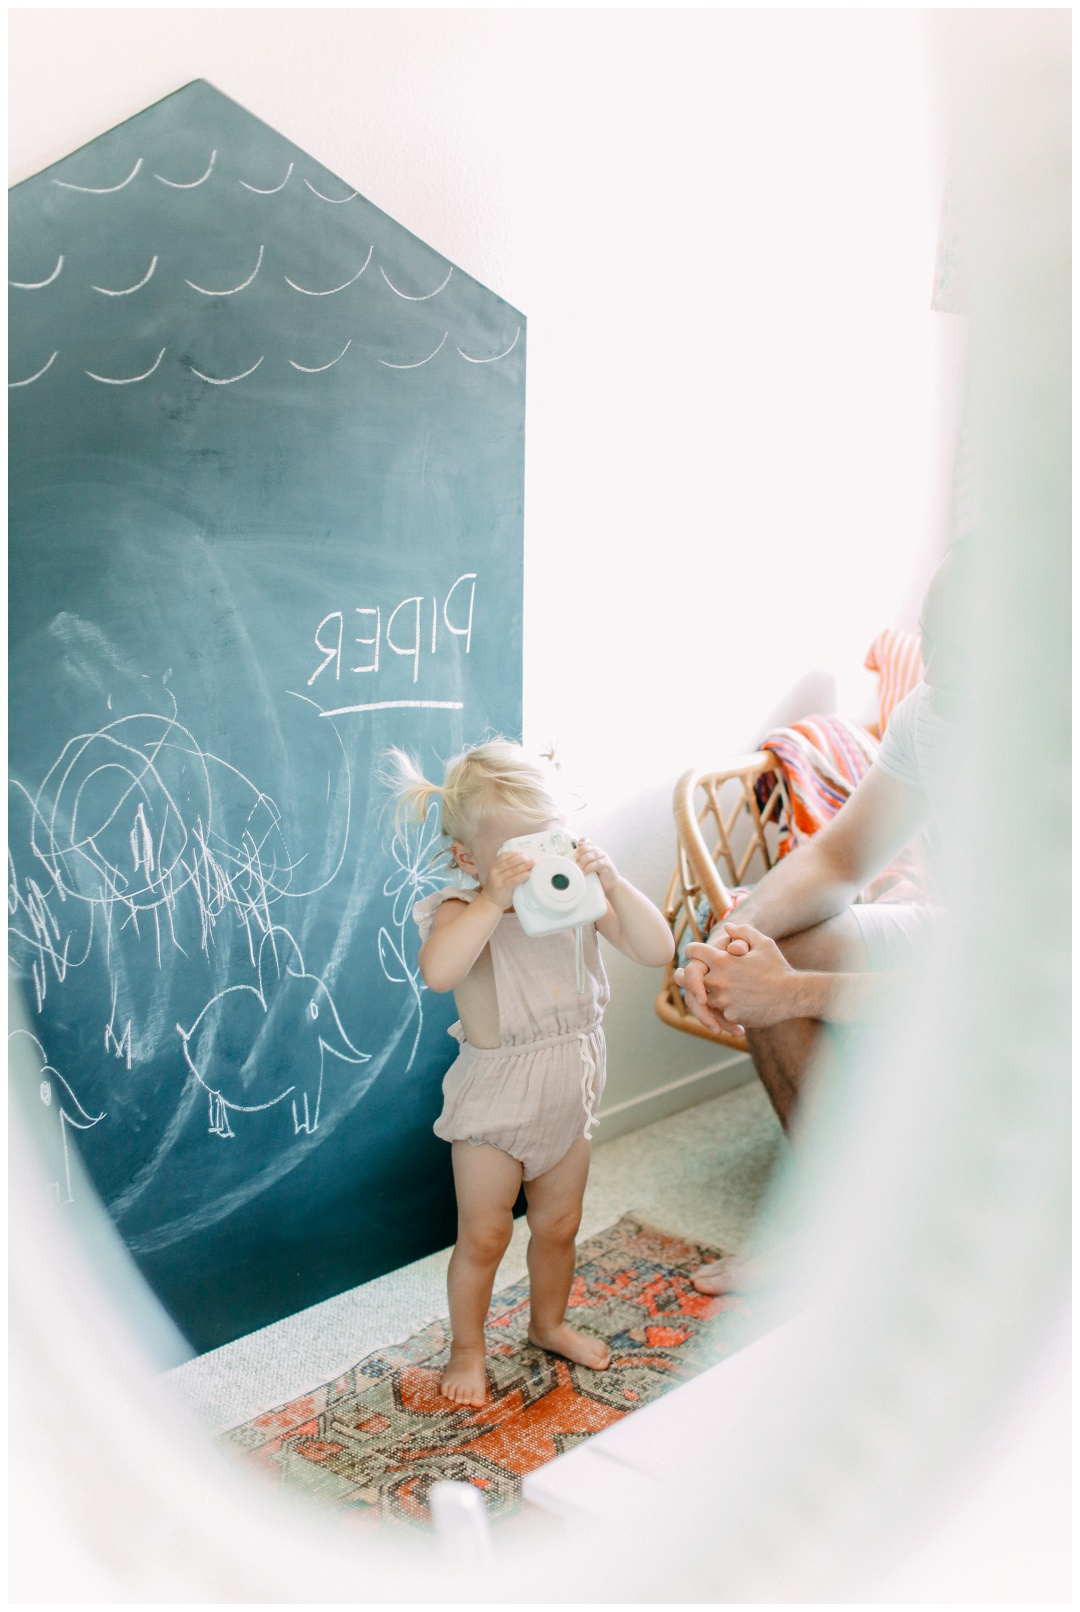 Kristin_Dinsmore_Family_Newport_Beach_Family_Photographer_in_home_lifestyle_session_Cori_kleckner_photography_Orange_county_in_home_Family_photos_Newport_Beach_Family_photos__1750.jpg